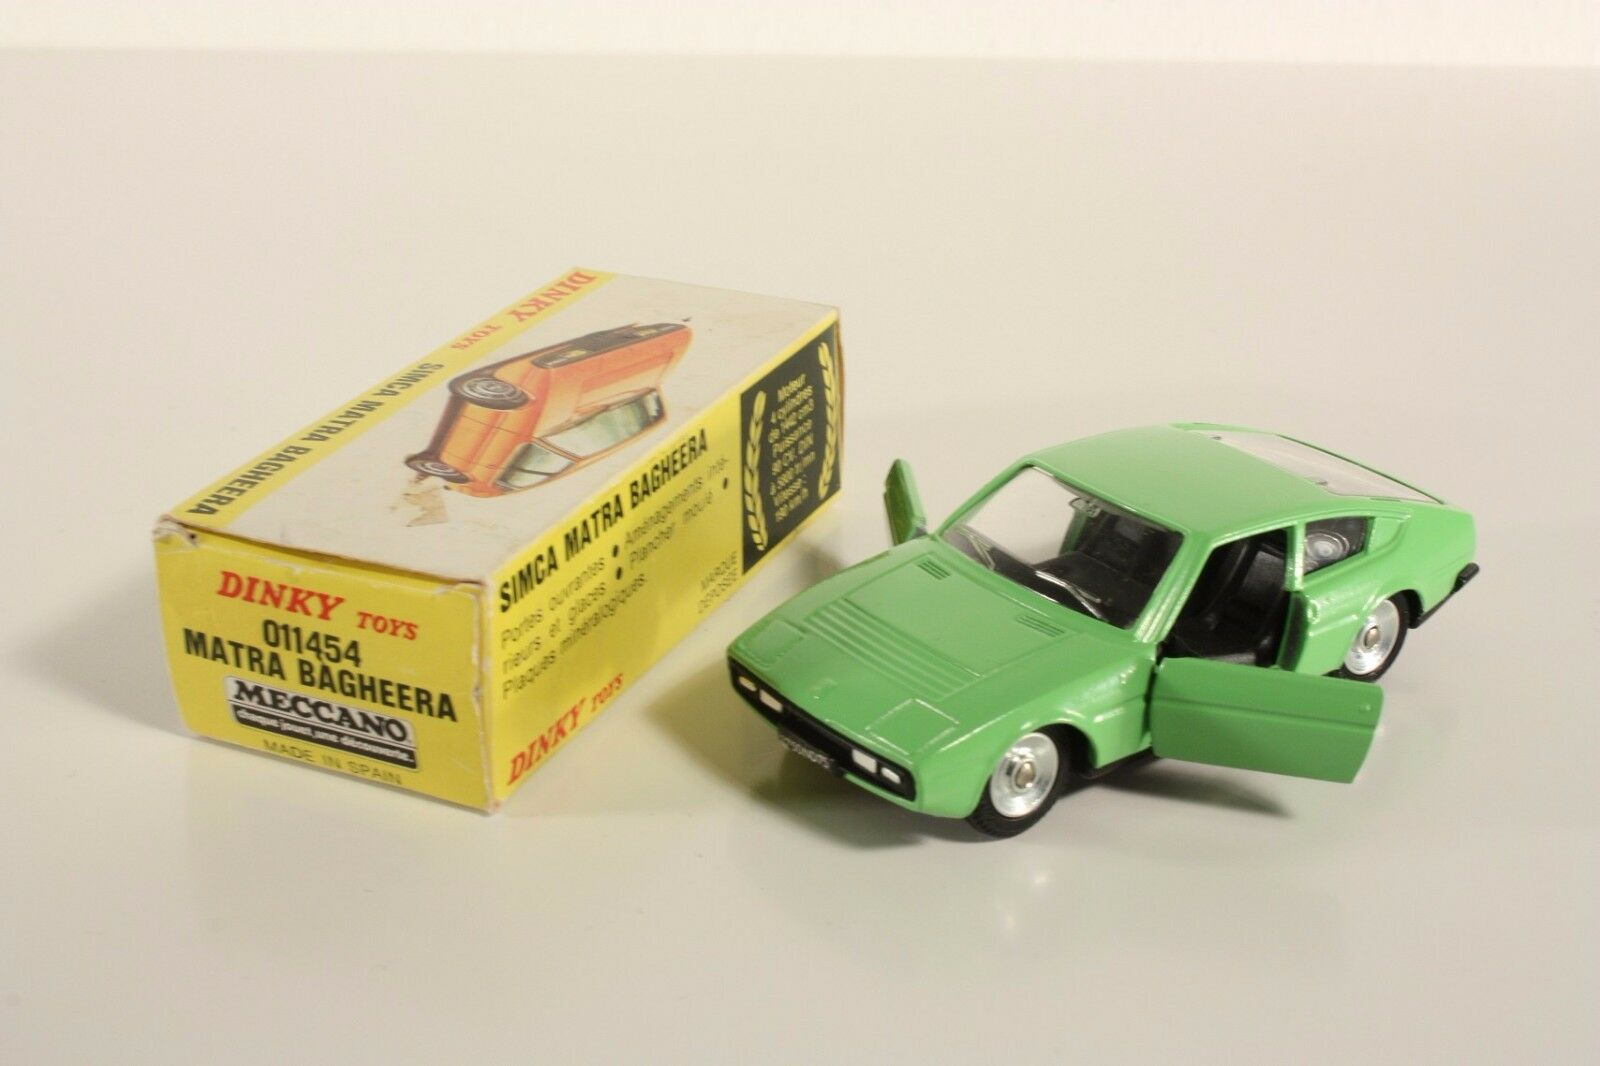 DINKY TOYS 011454, Matra Bagheera, Mint in Box  ab2049